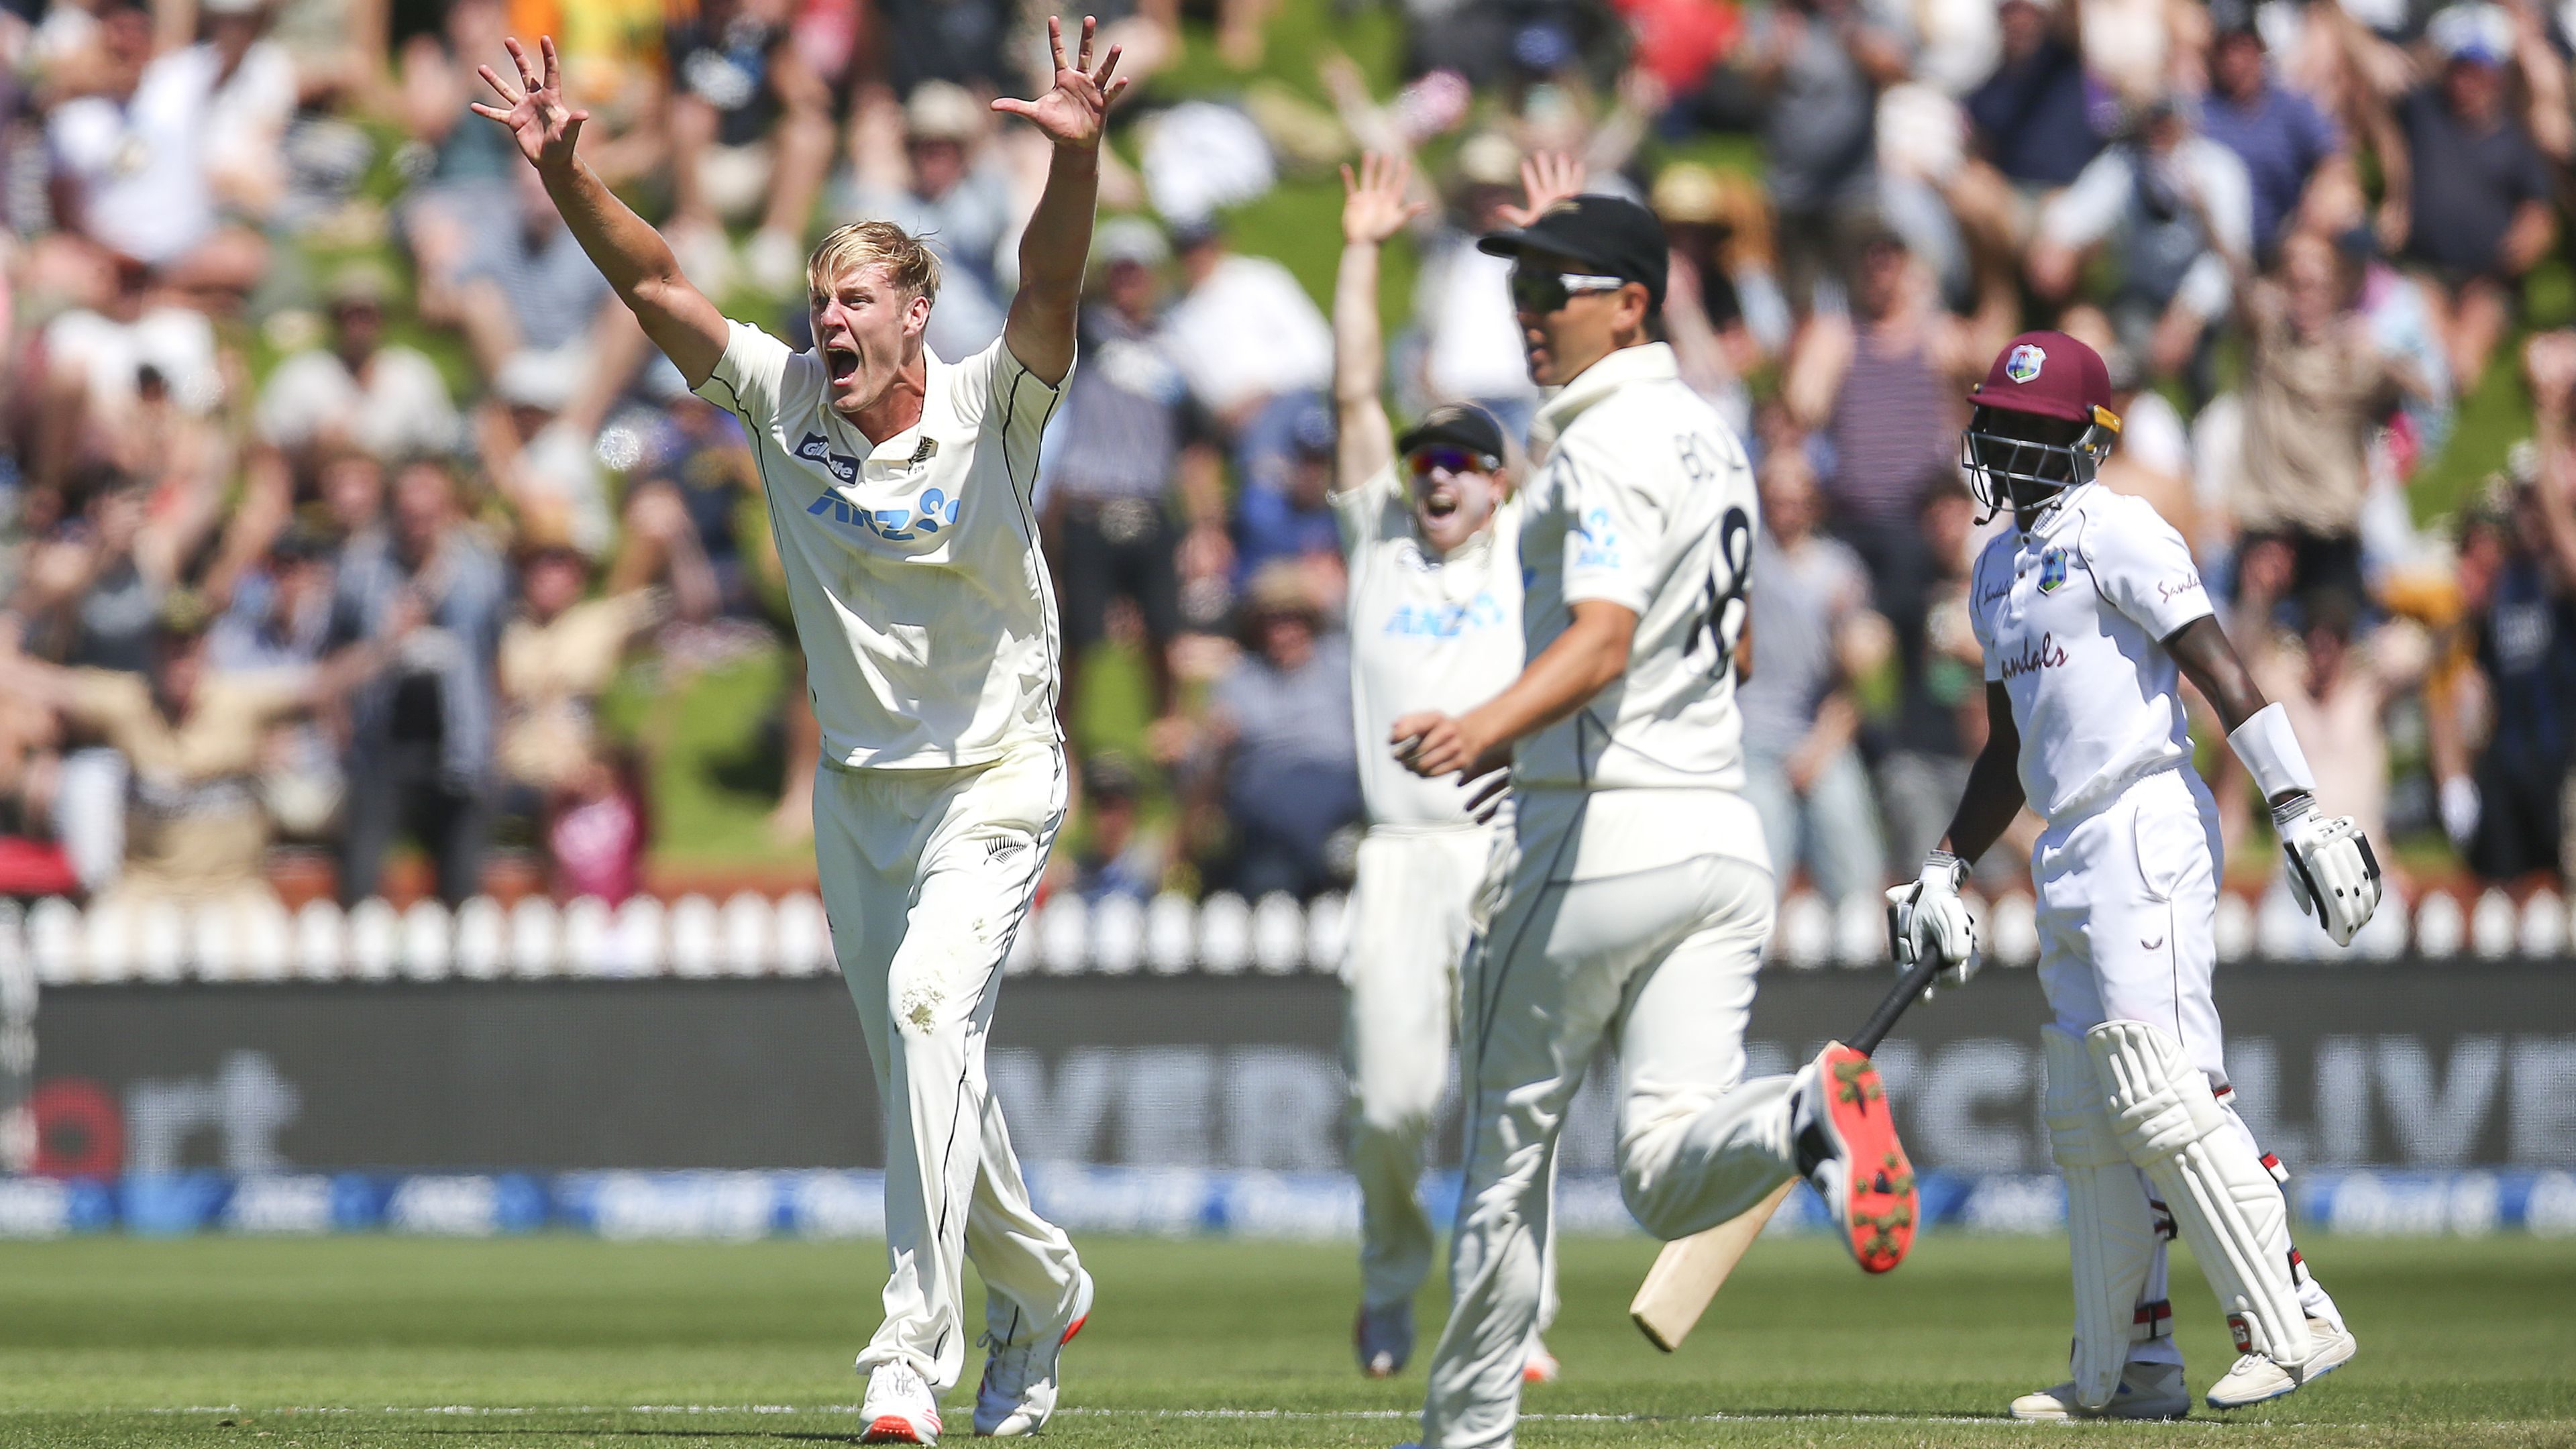 Kyle Jamieson of New Zealand appeals for a wicket at Wellington's Basin Reserve.